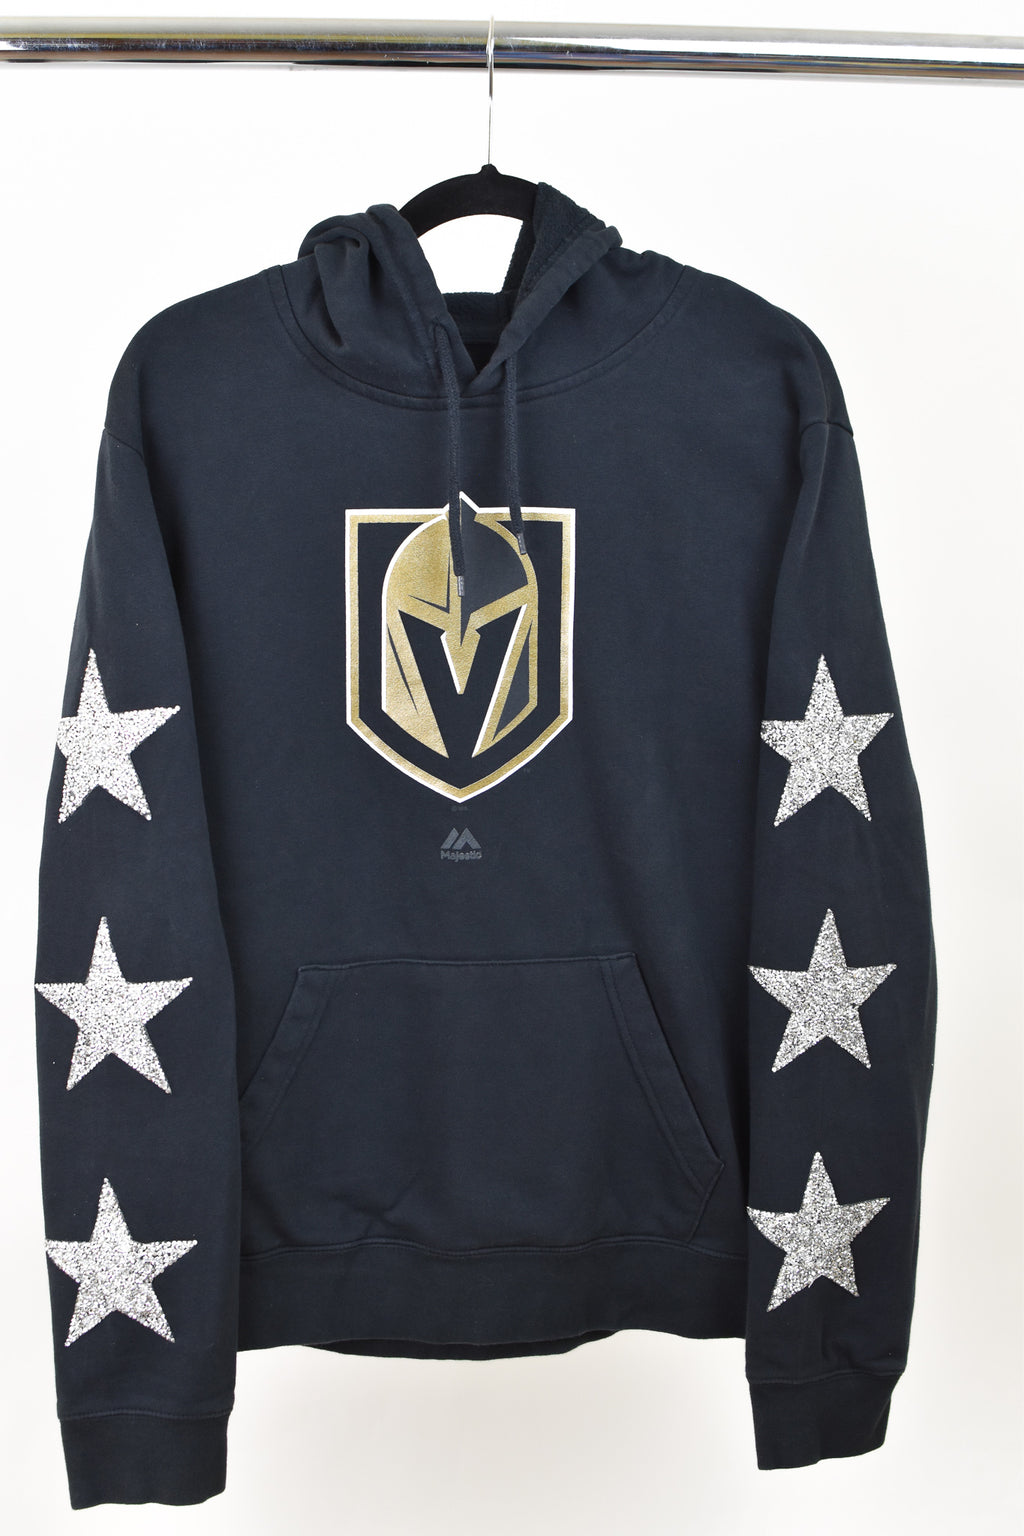 Upcycled Las Vegas Golden Knights Star Rhinestone Sweatshirt